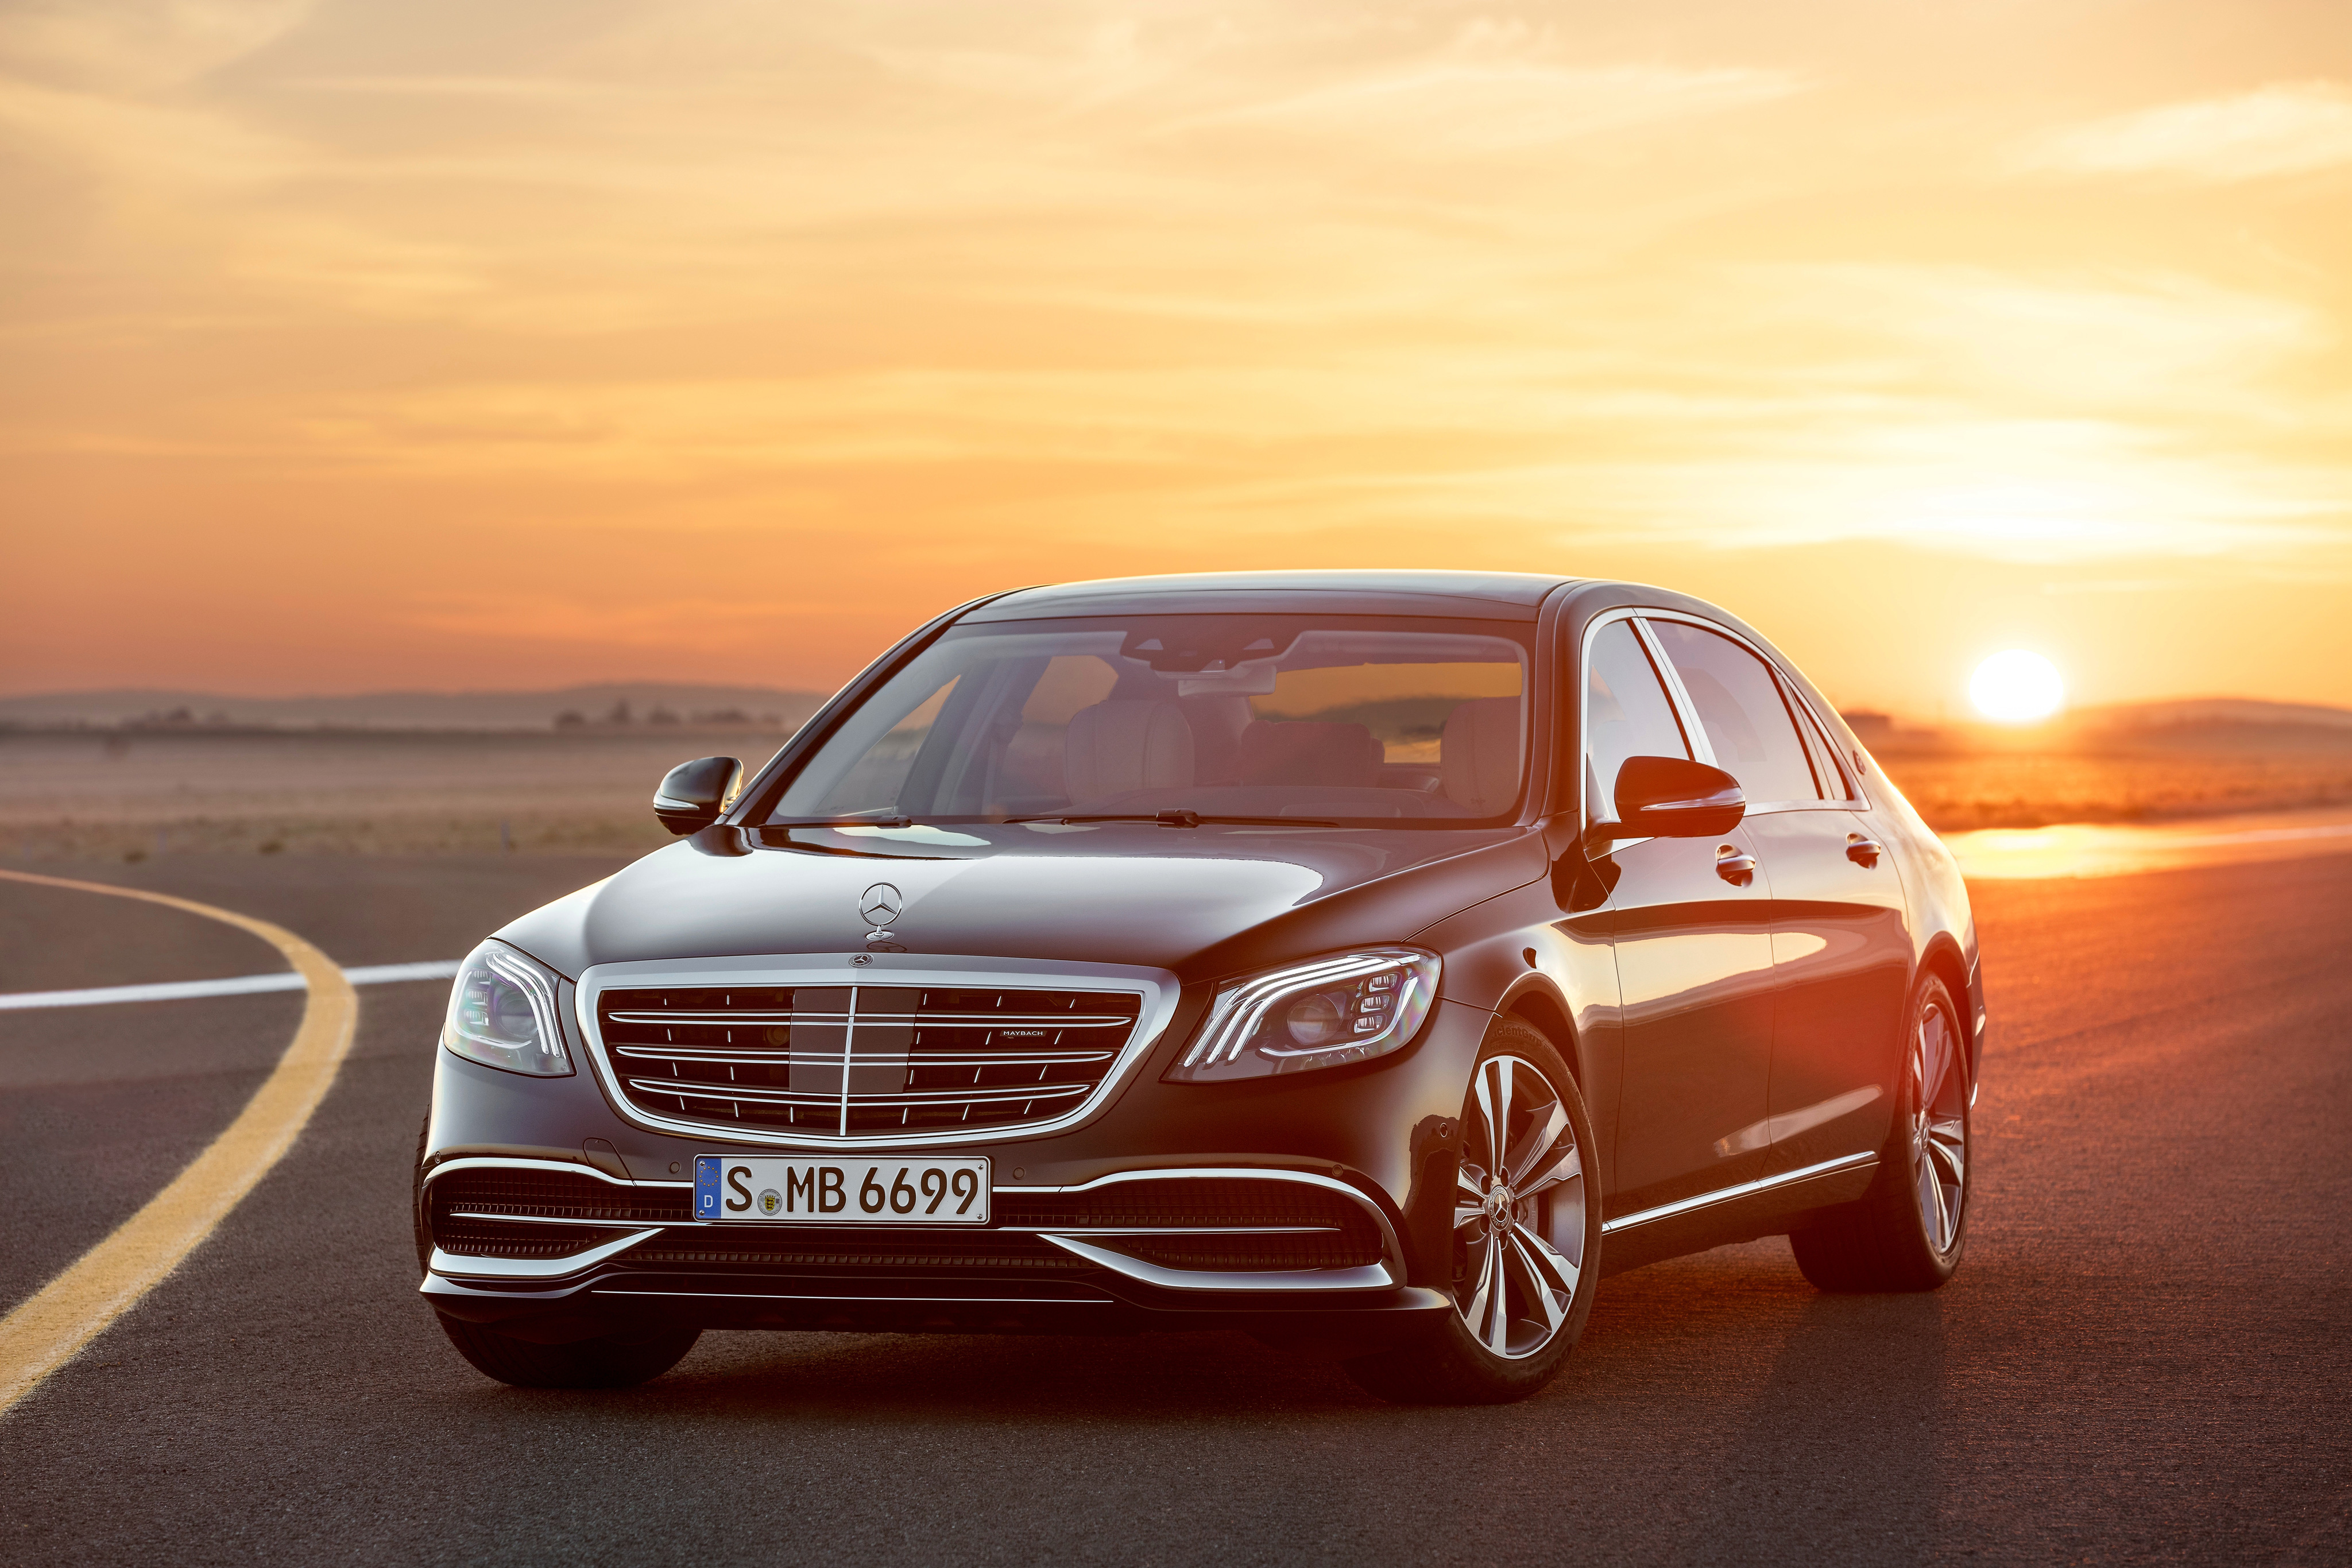 Mercedes Maybach S 650 4k, HD Cars, 4k Wallpapers, Images ...